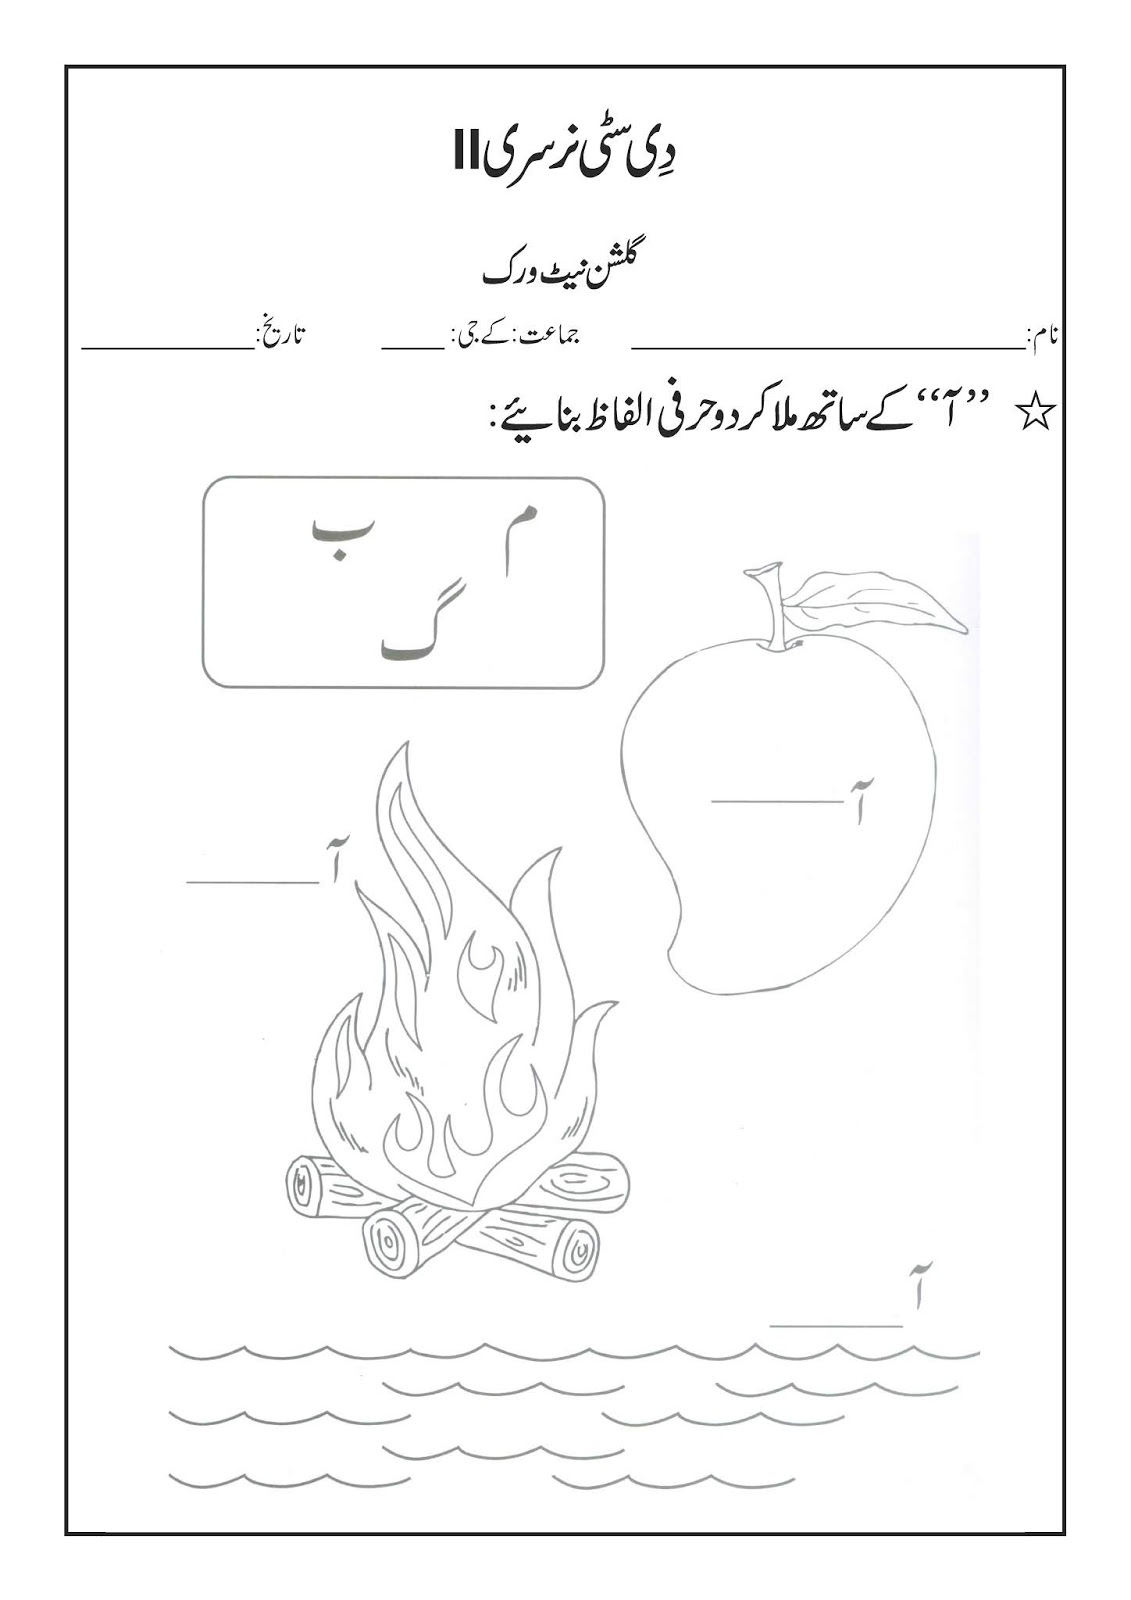 SR Gulshan The City Nursery-II: Urdu and Math Worksheets